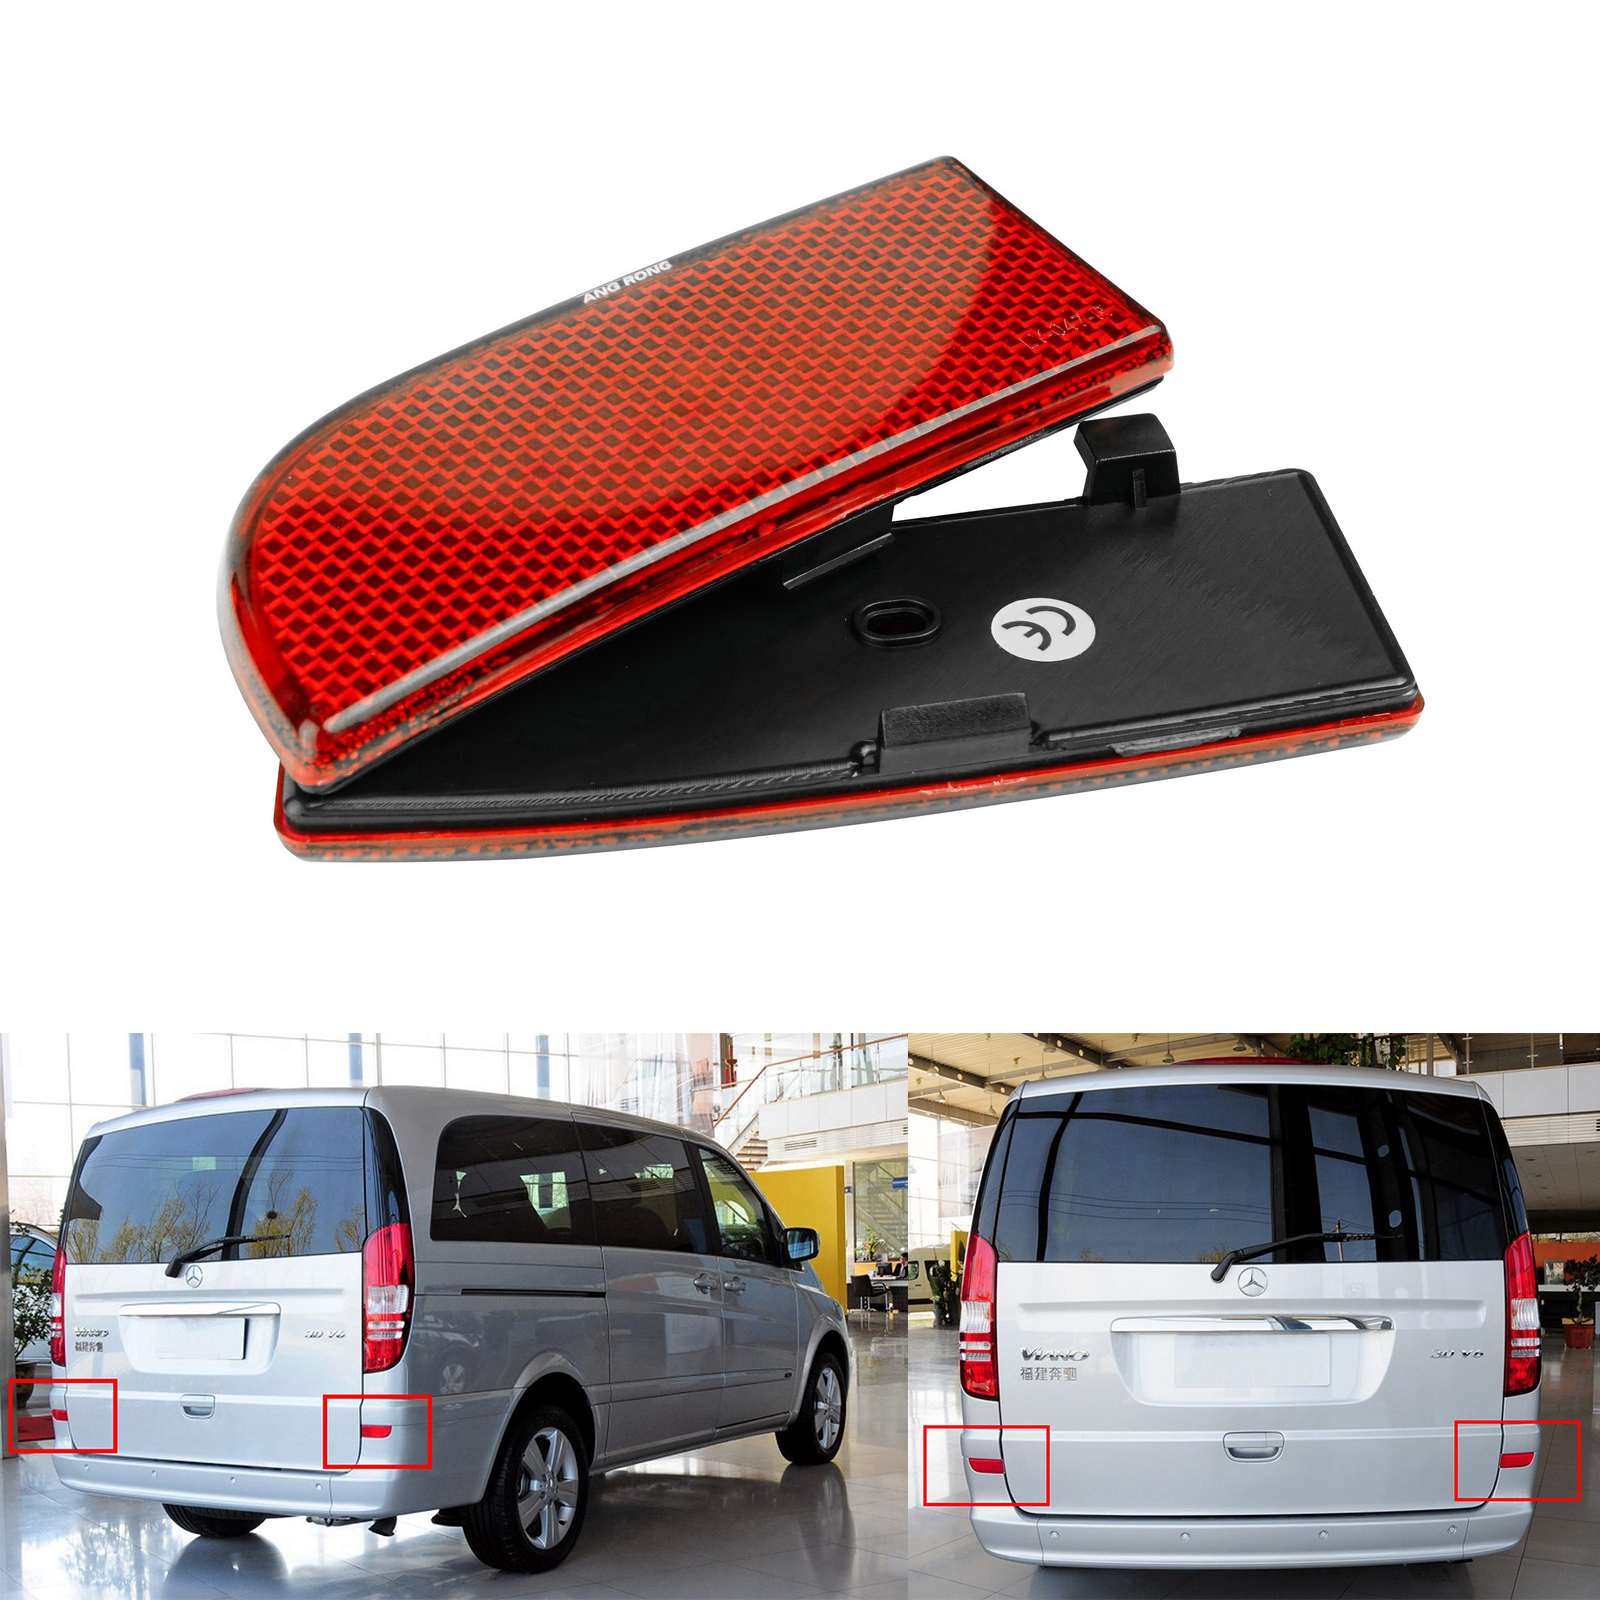 ANGRONG 2x Rear Bumper Reflector Red Lens New For Mercedes Benz W639 Vito Viano 2003-2014